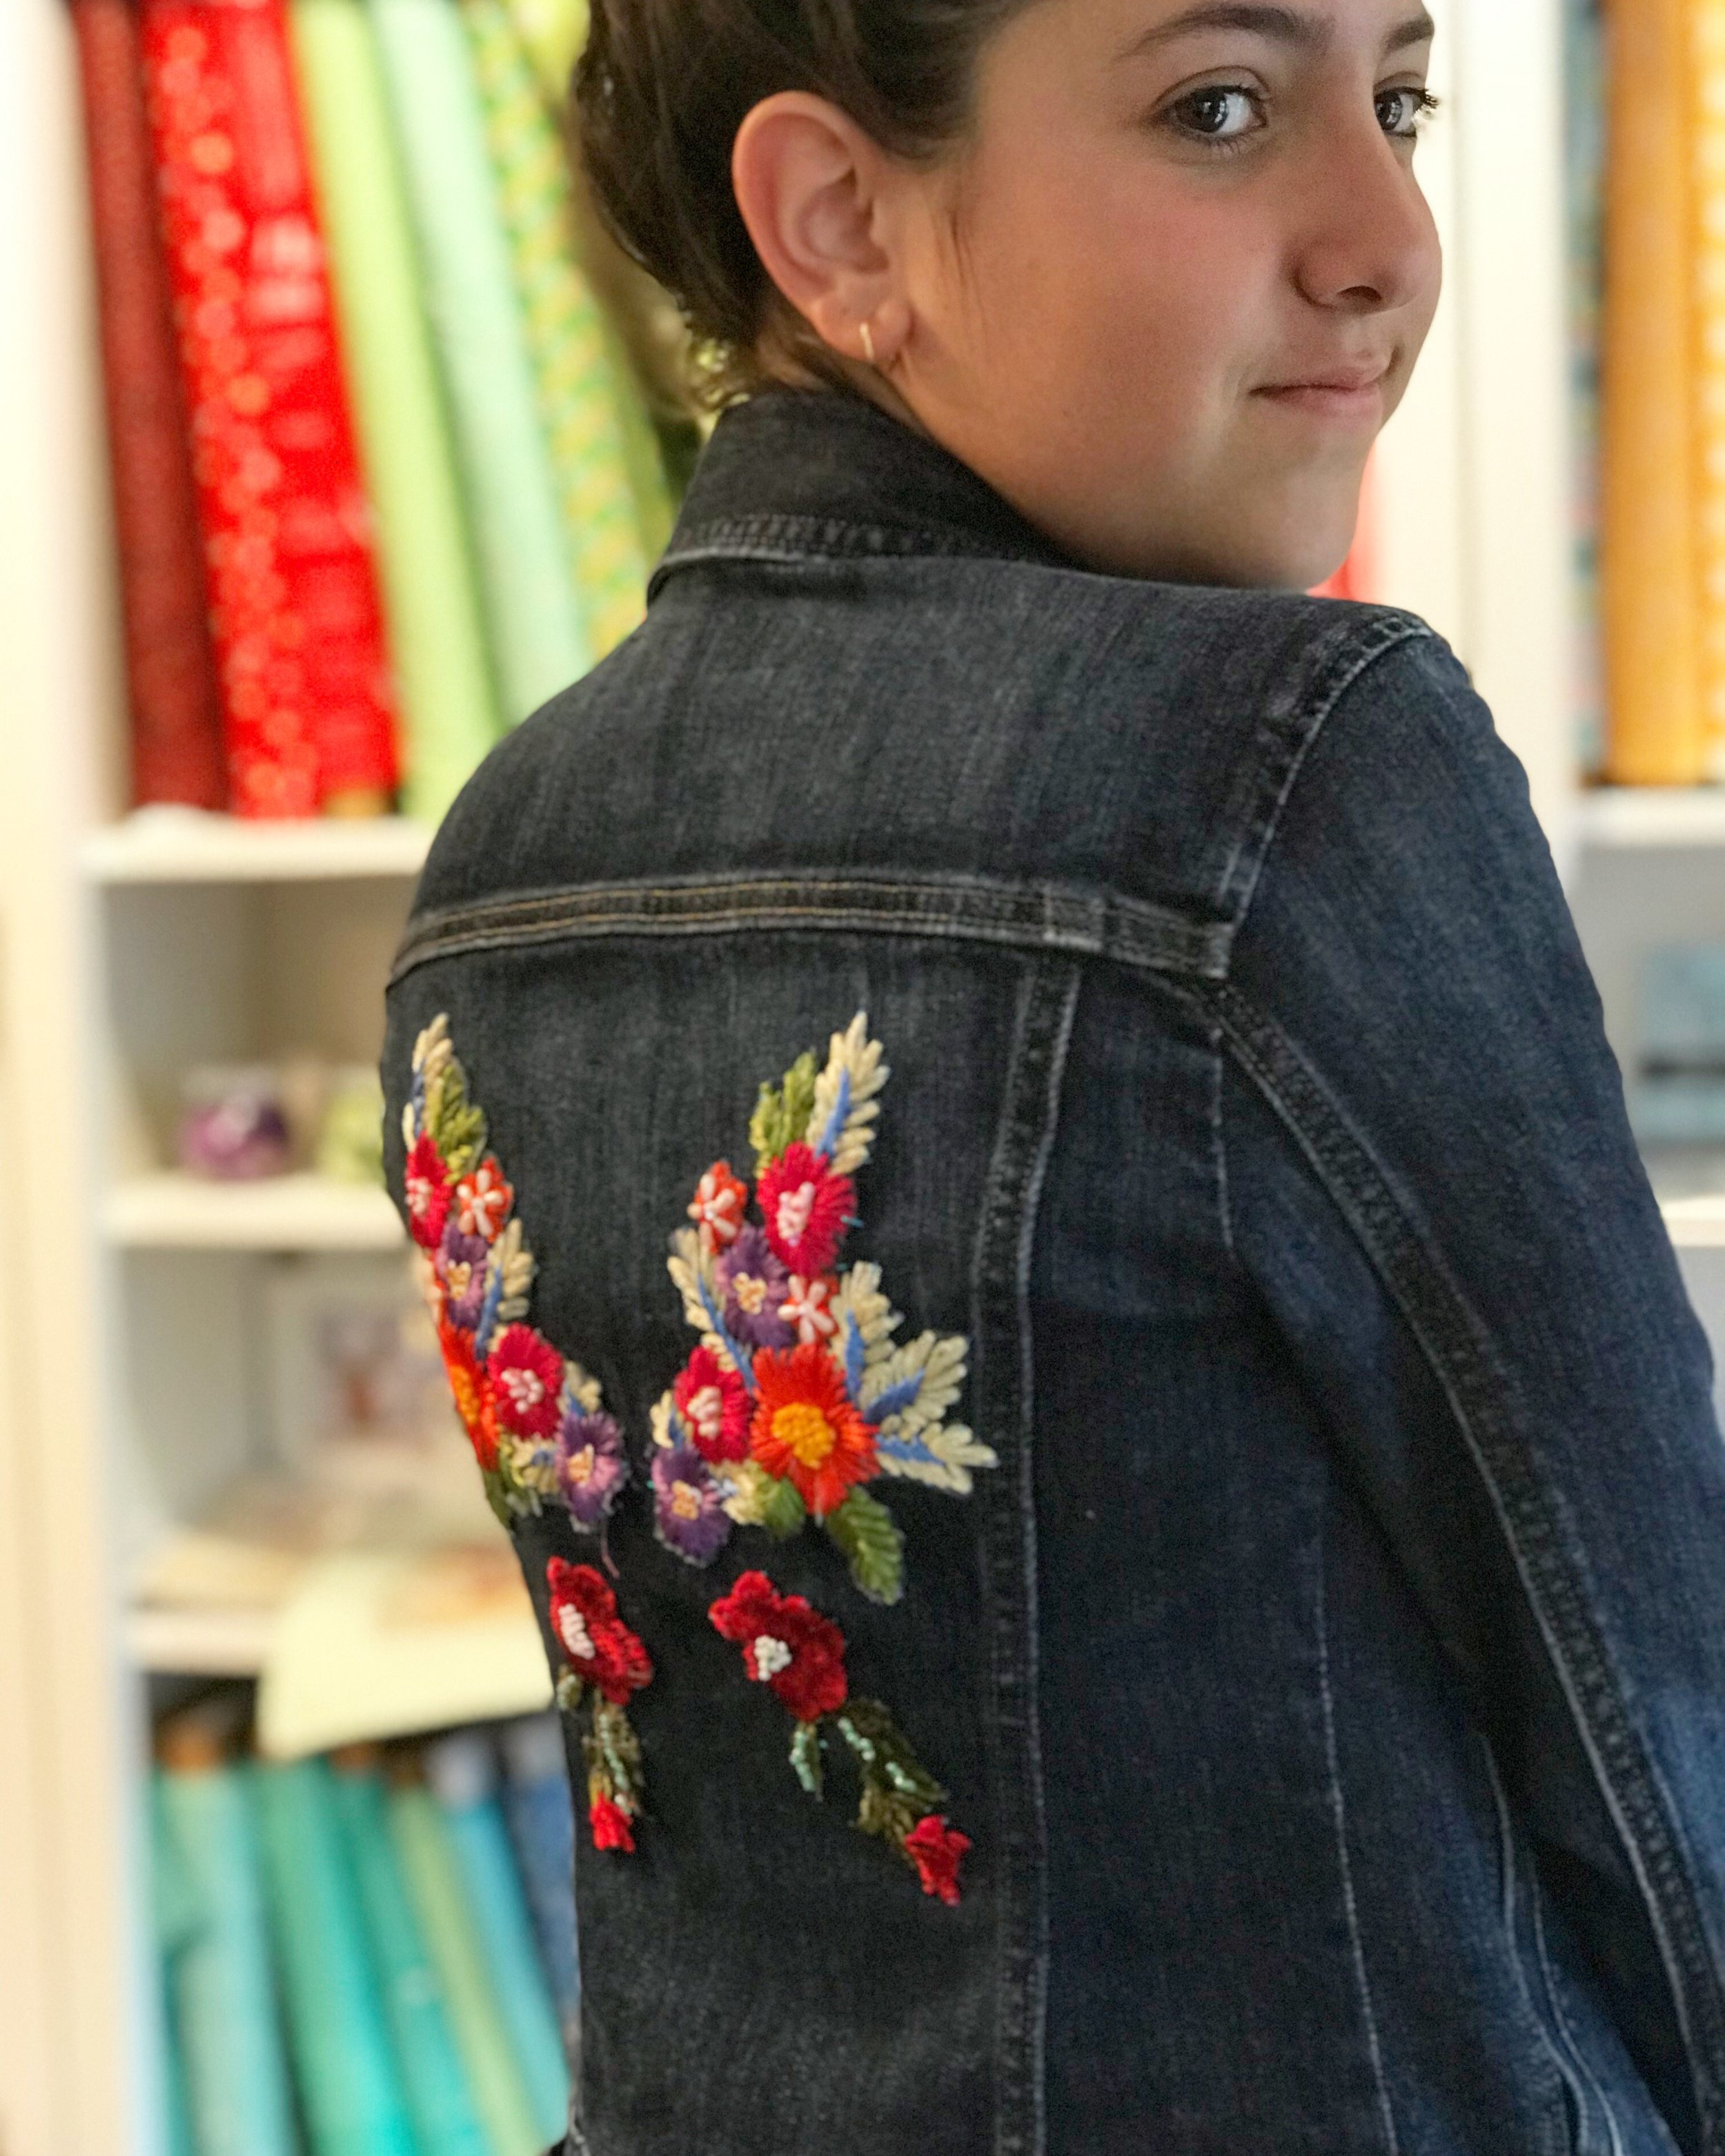 - Learn This Amazing technique with the artist Vera Suzuki in a two day Workshop.Bring a shirt, jacket, purse, a special piece to customise and see something ordinary become something unique!